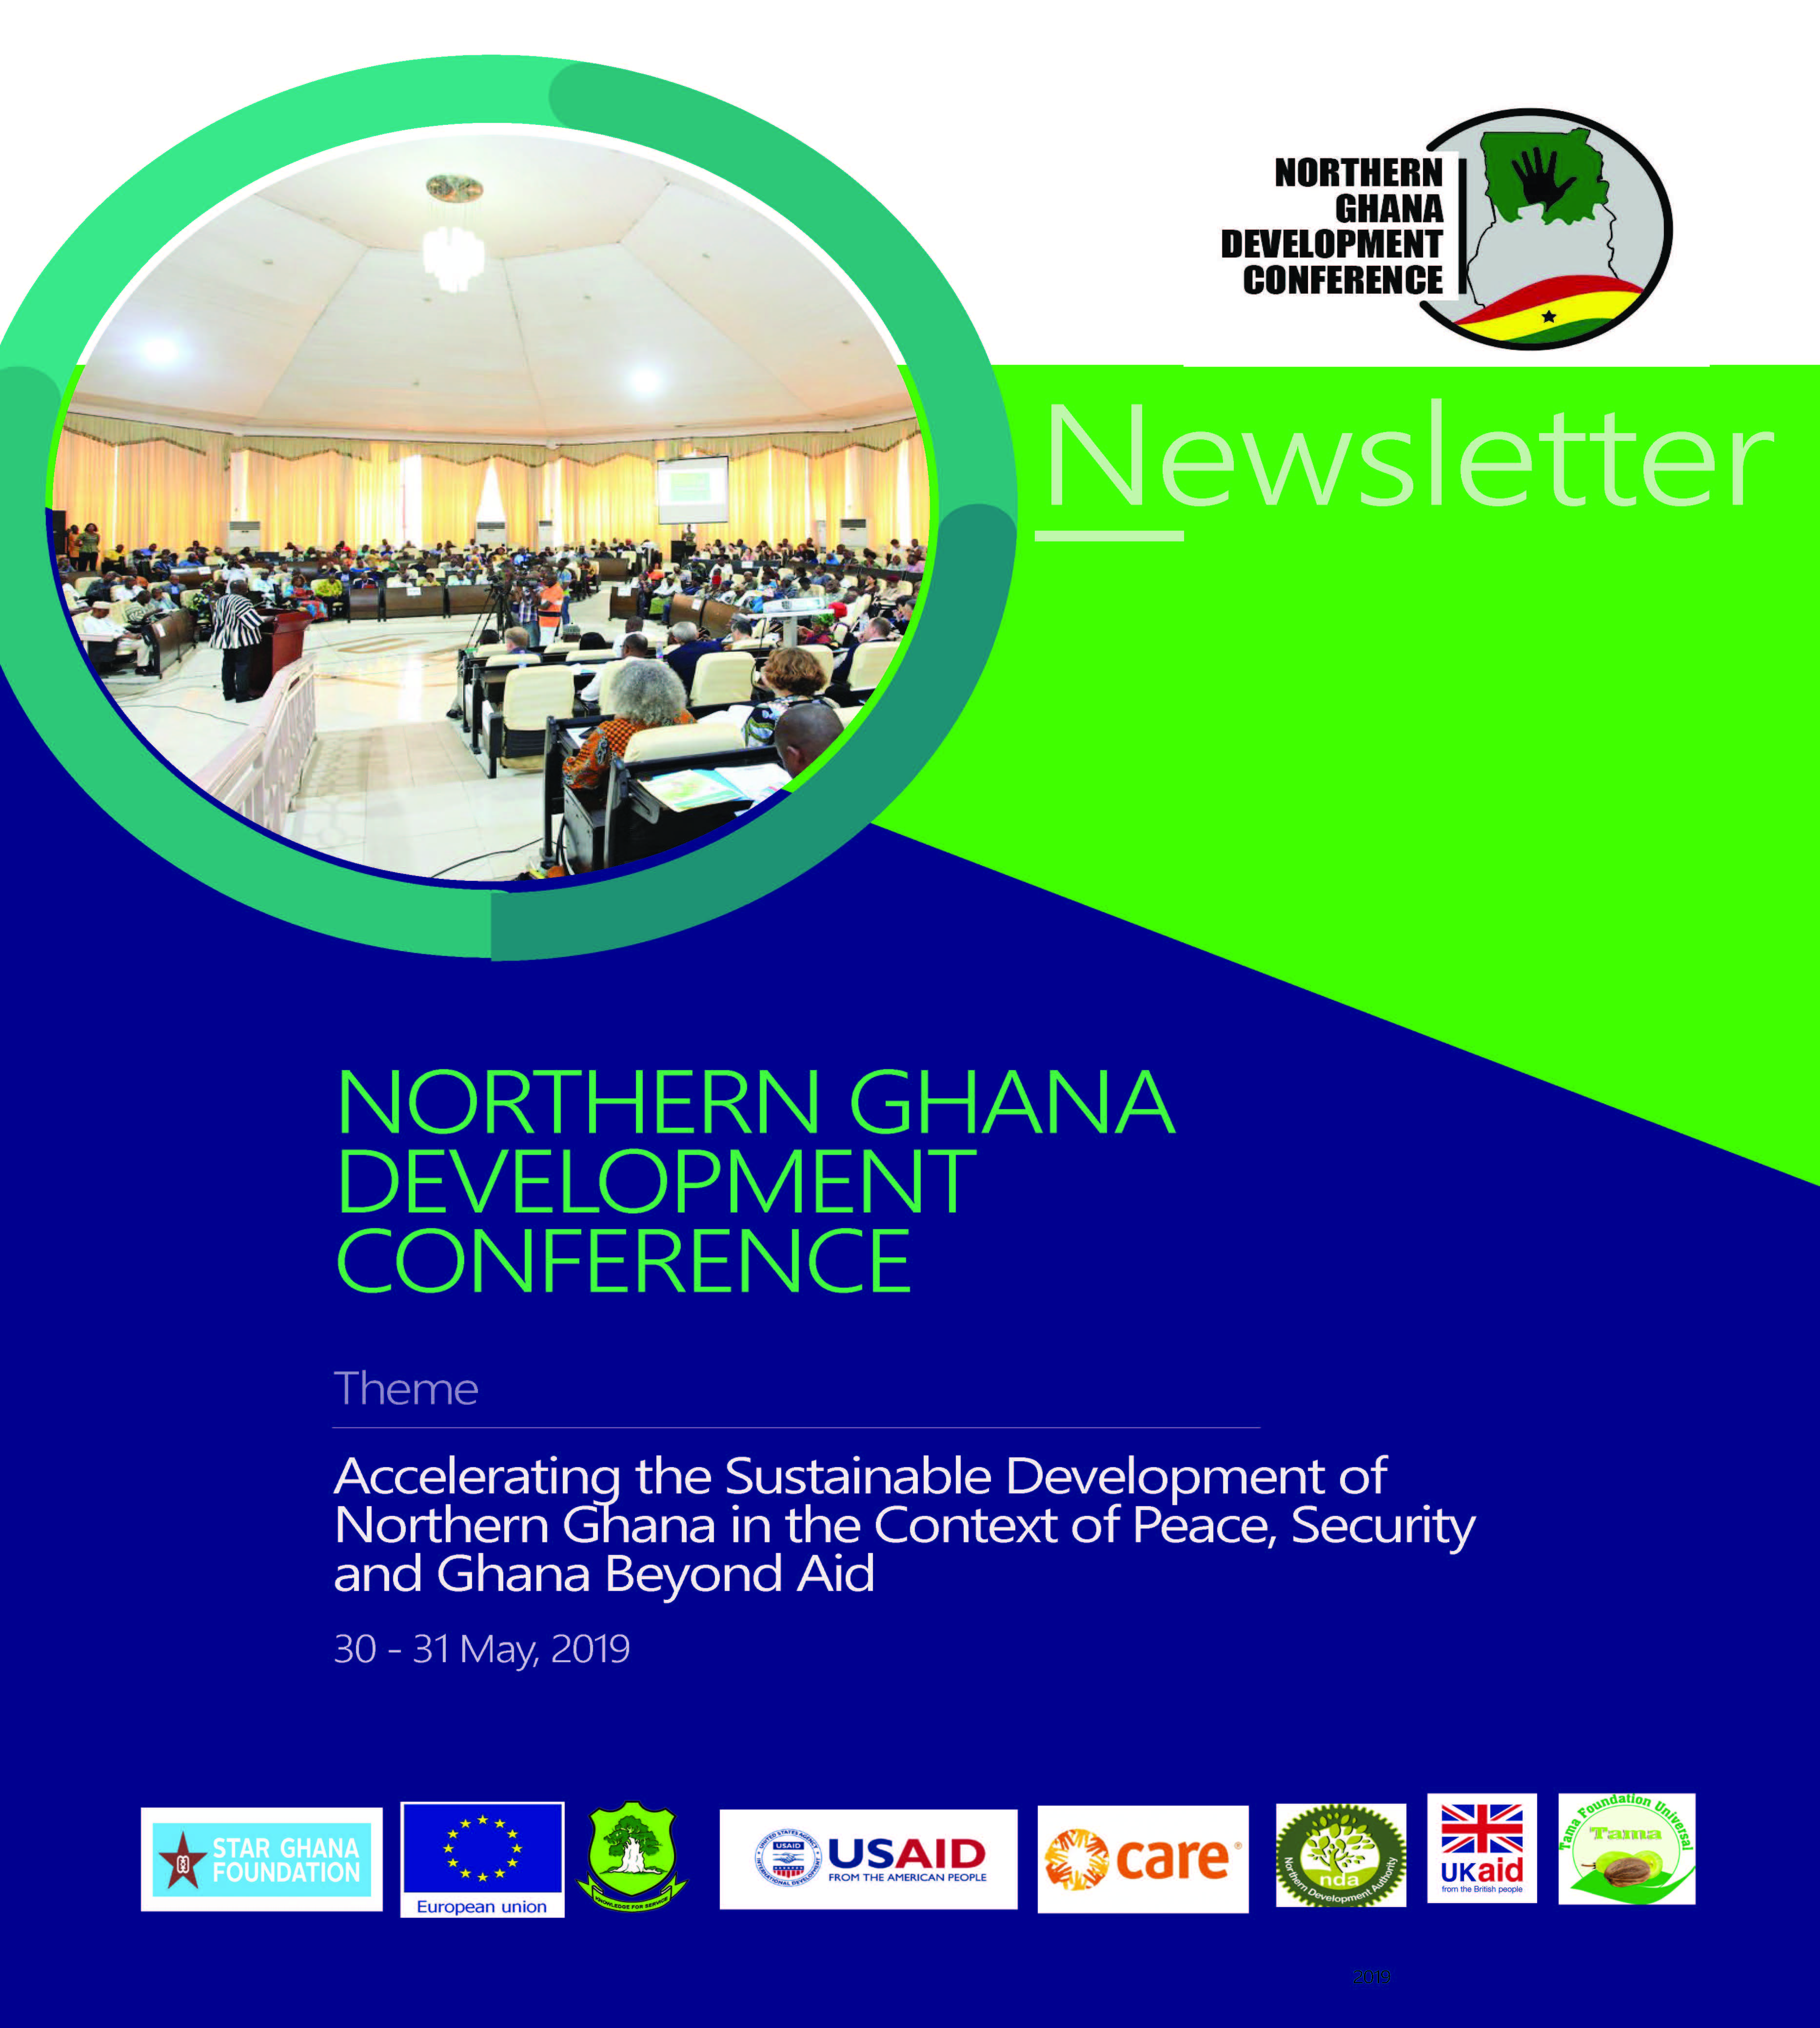 STAR Ghana Foundation - 2019 Northern Ghana  Development Conference Newsletter